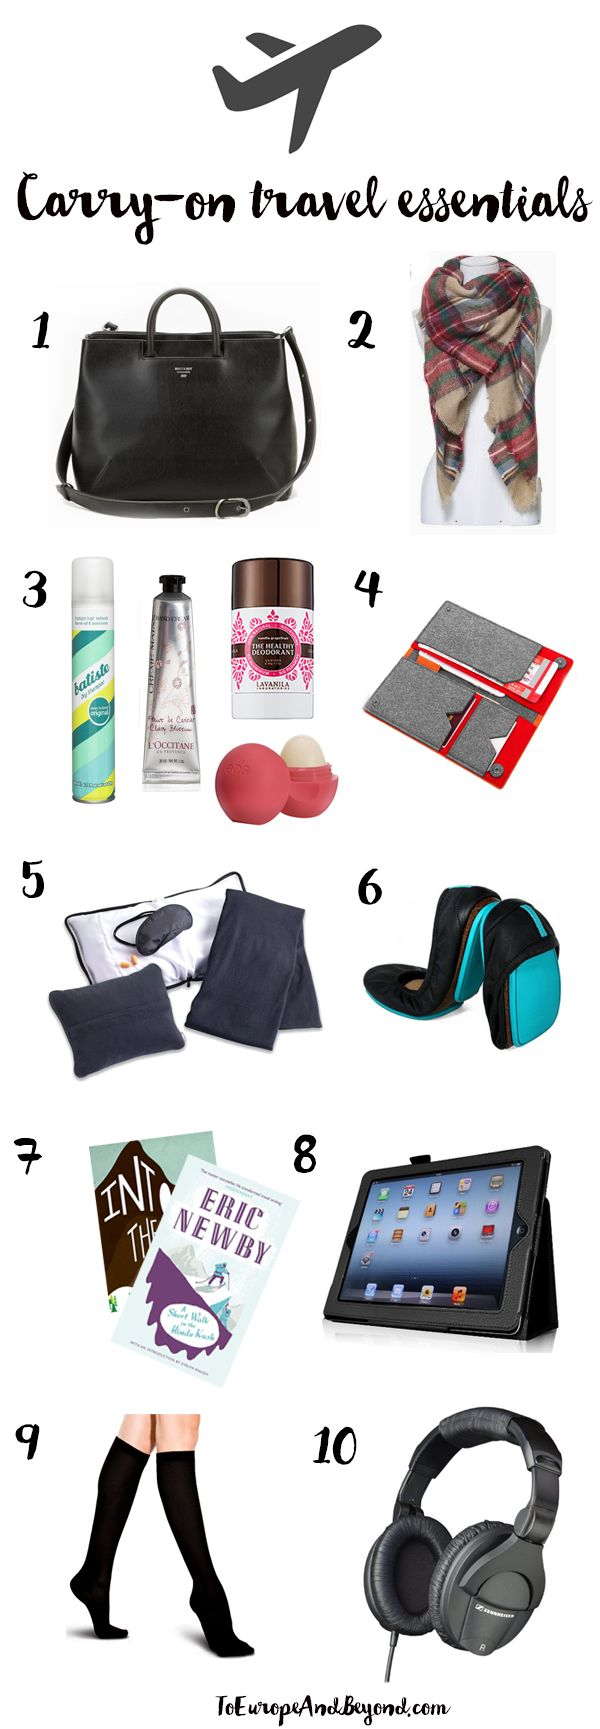 17 Best ideas about Carry On Luggage on Pinterest